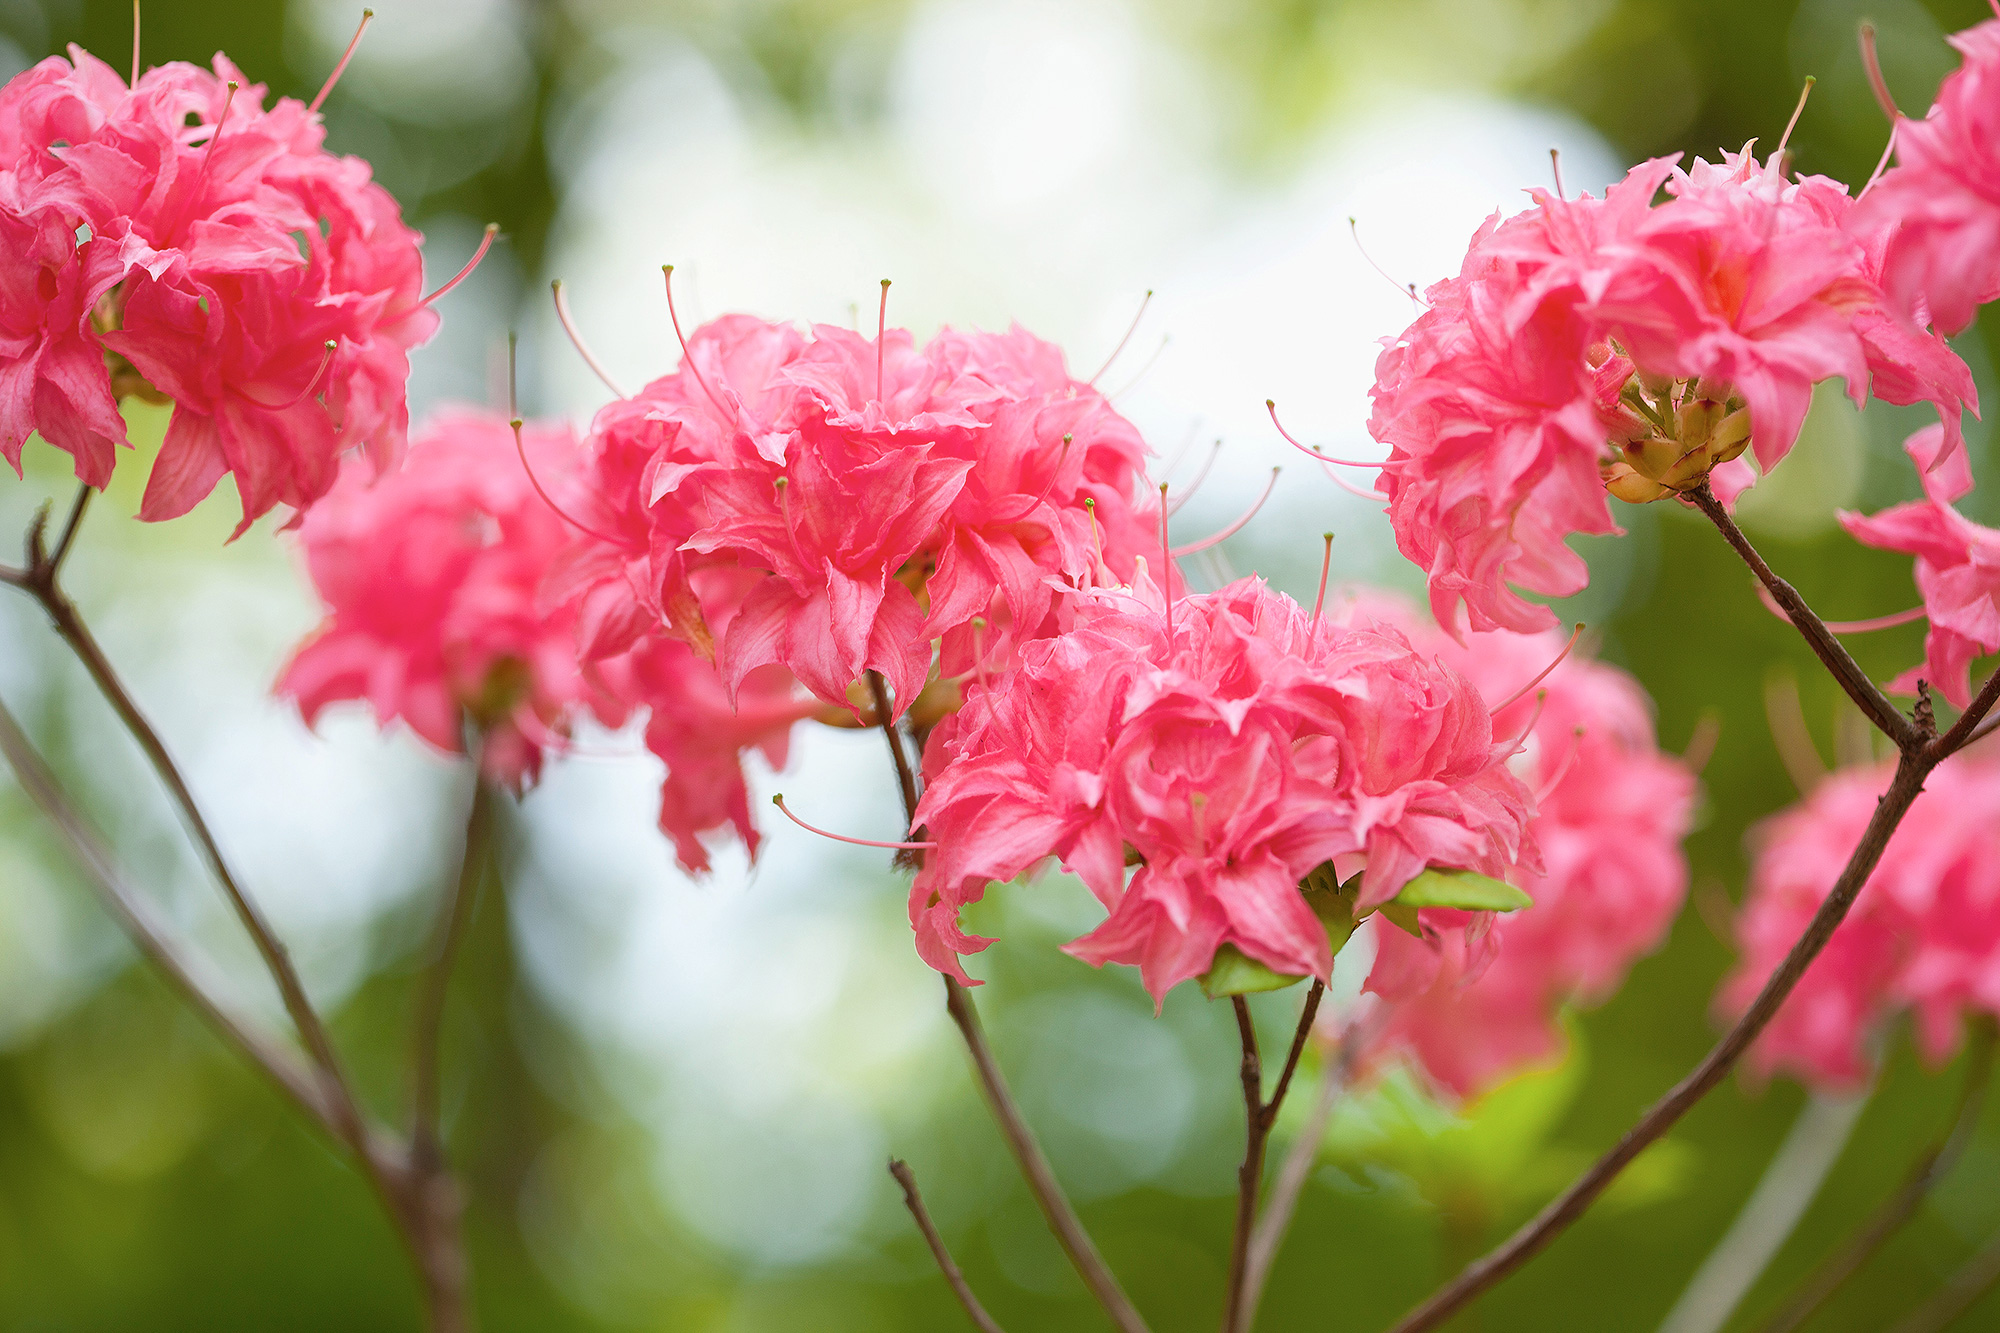 Species traits such as flower color are one of the essential biodiversity variables that can be used to assess biodiversity change through time.